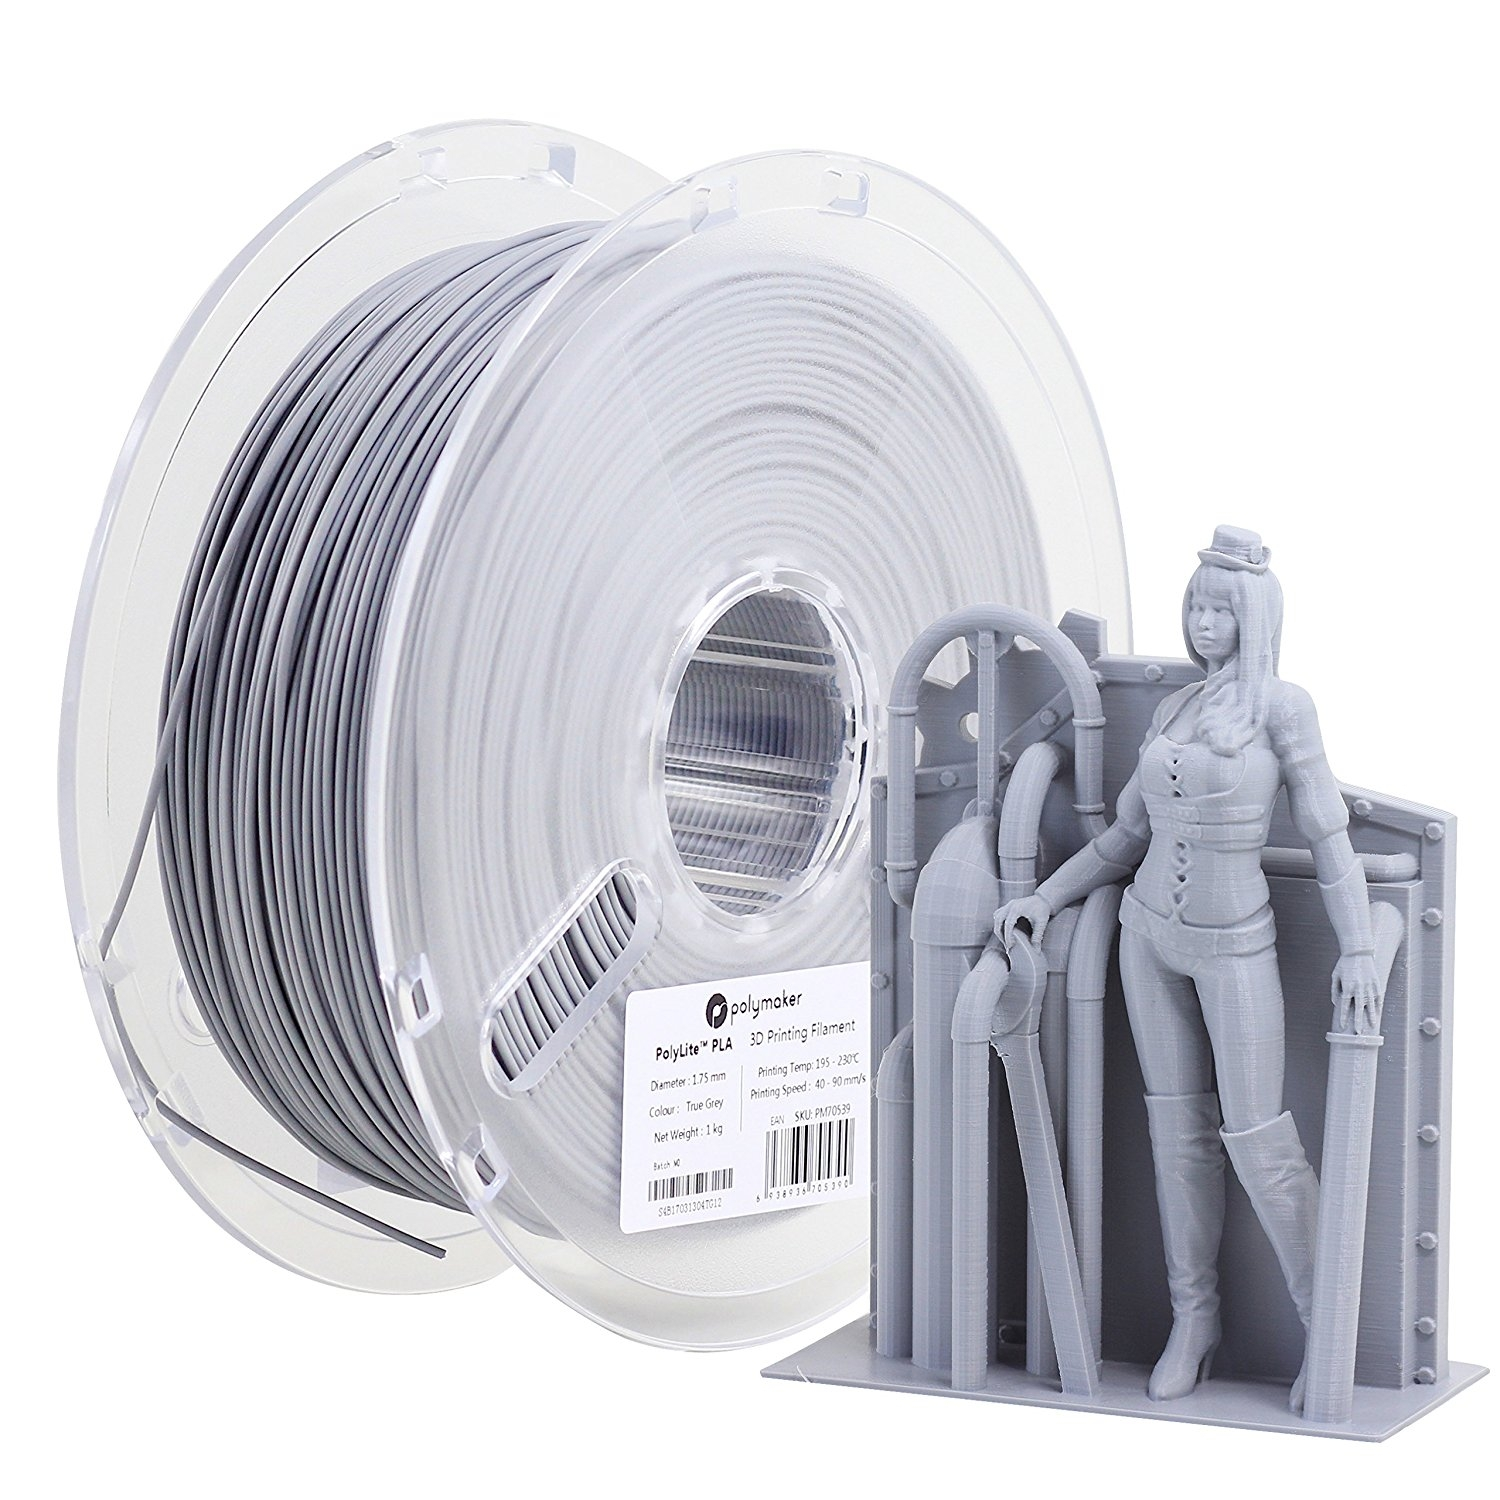 Polymaker PolyLite True Grey PLA 1.75 mm 1kg